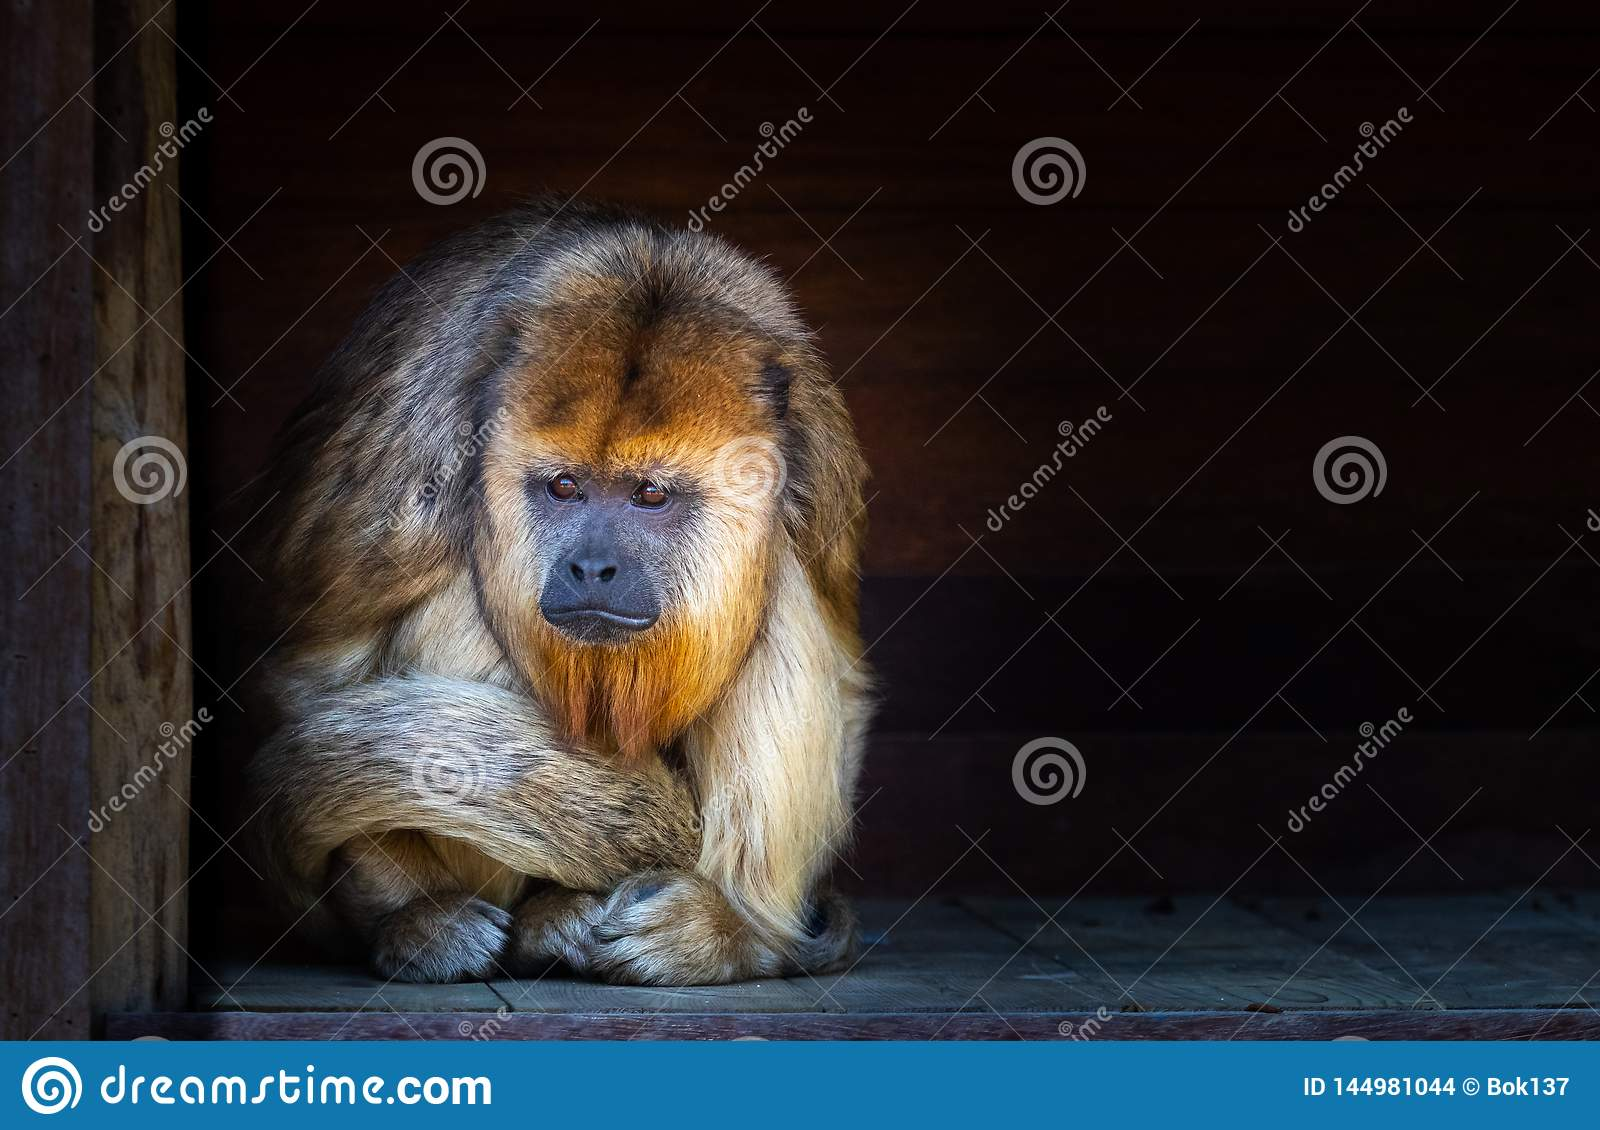 Sad looking howler monkey